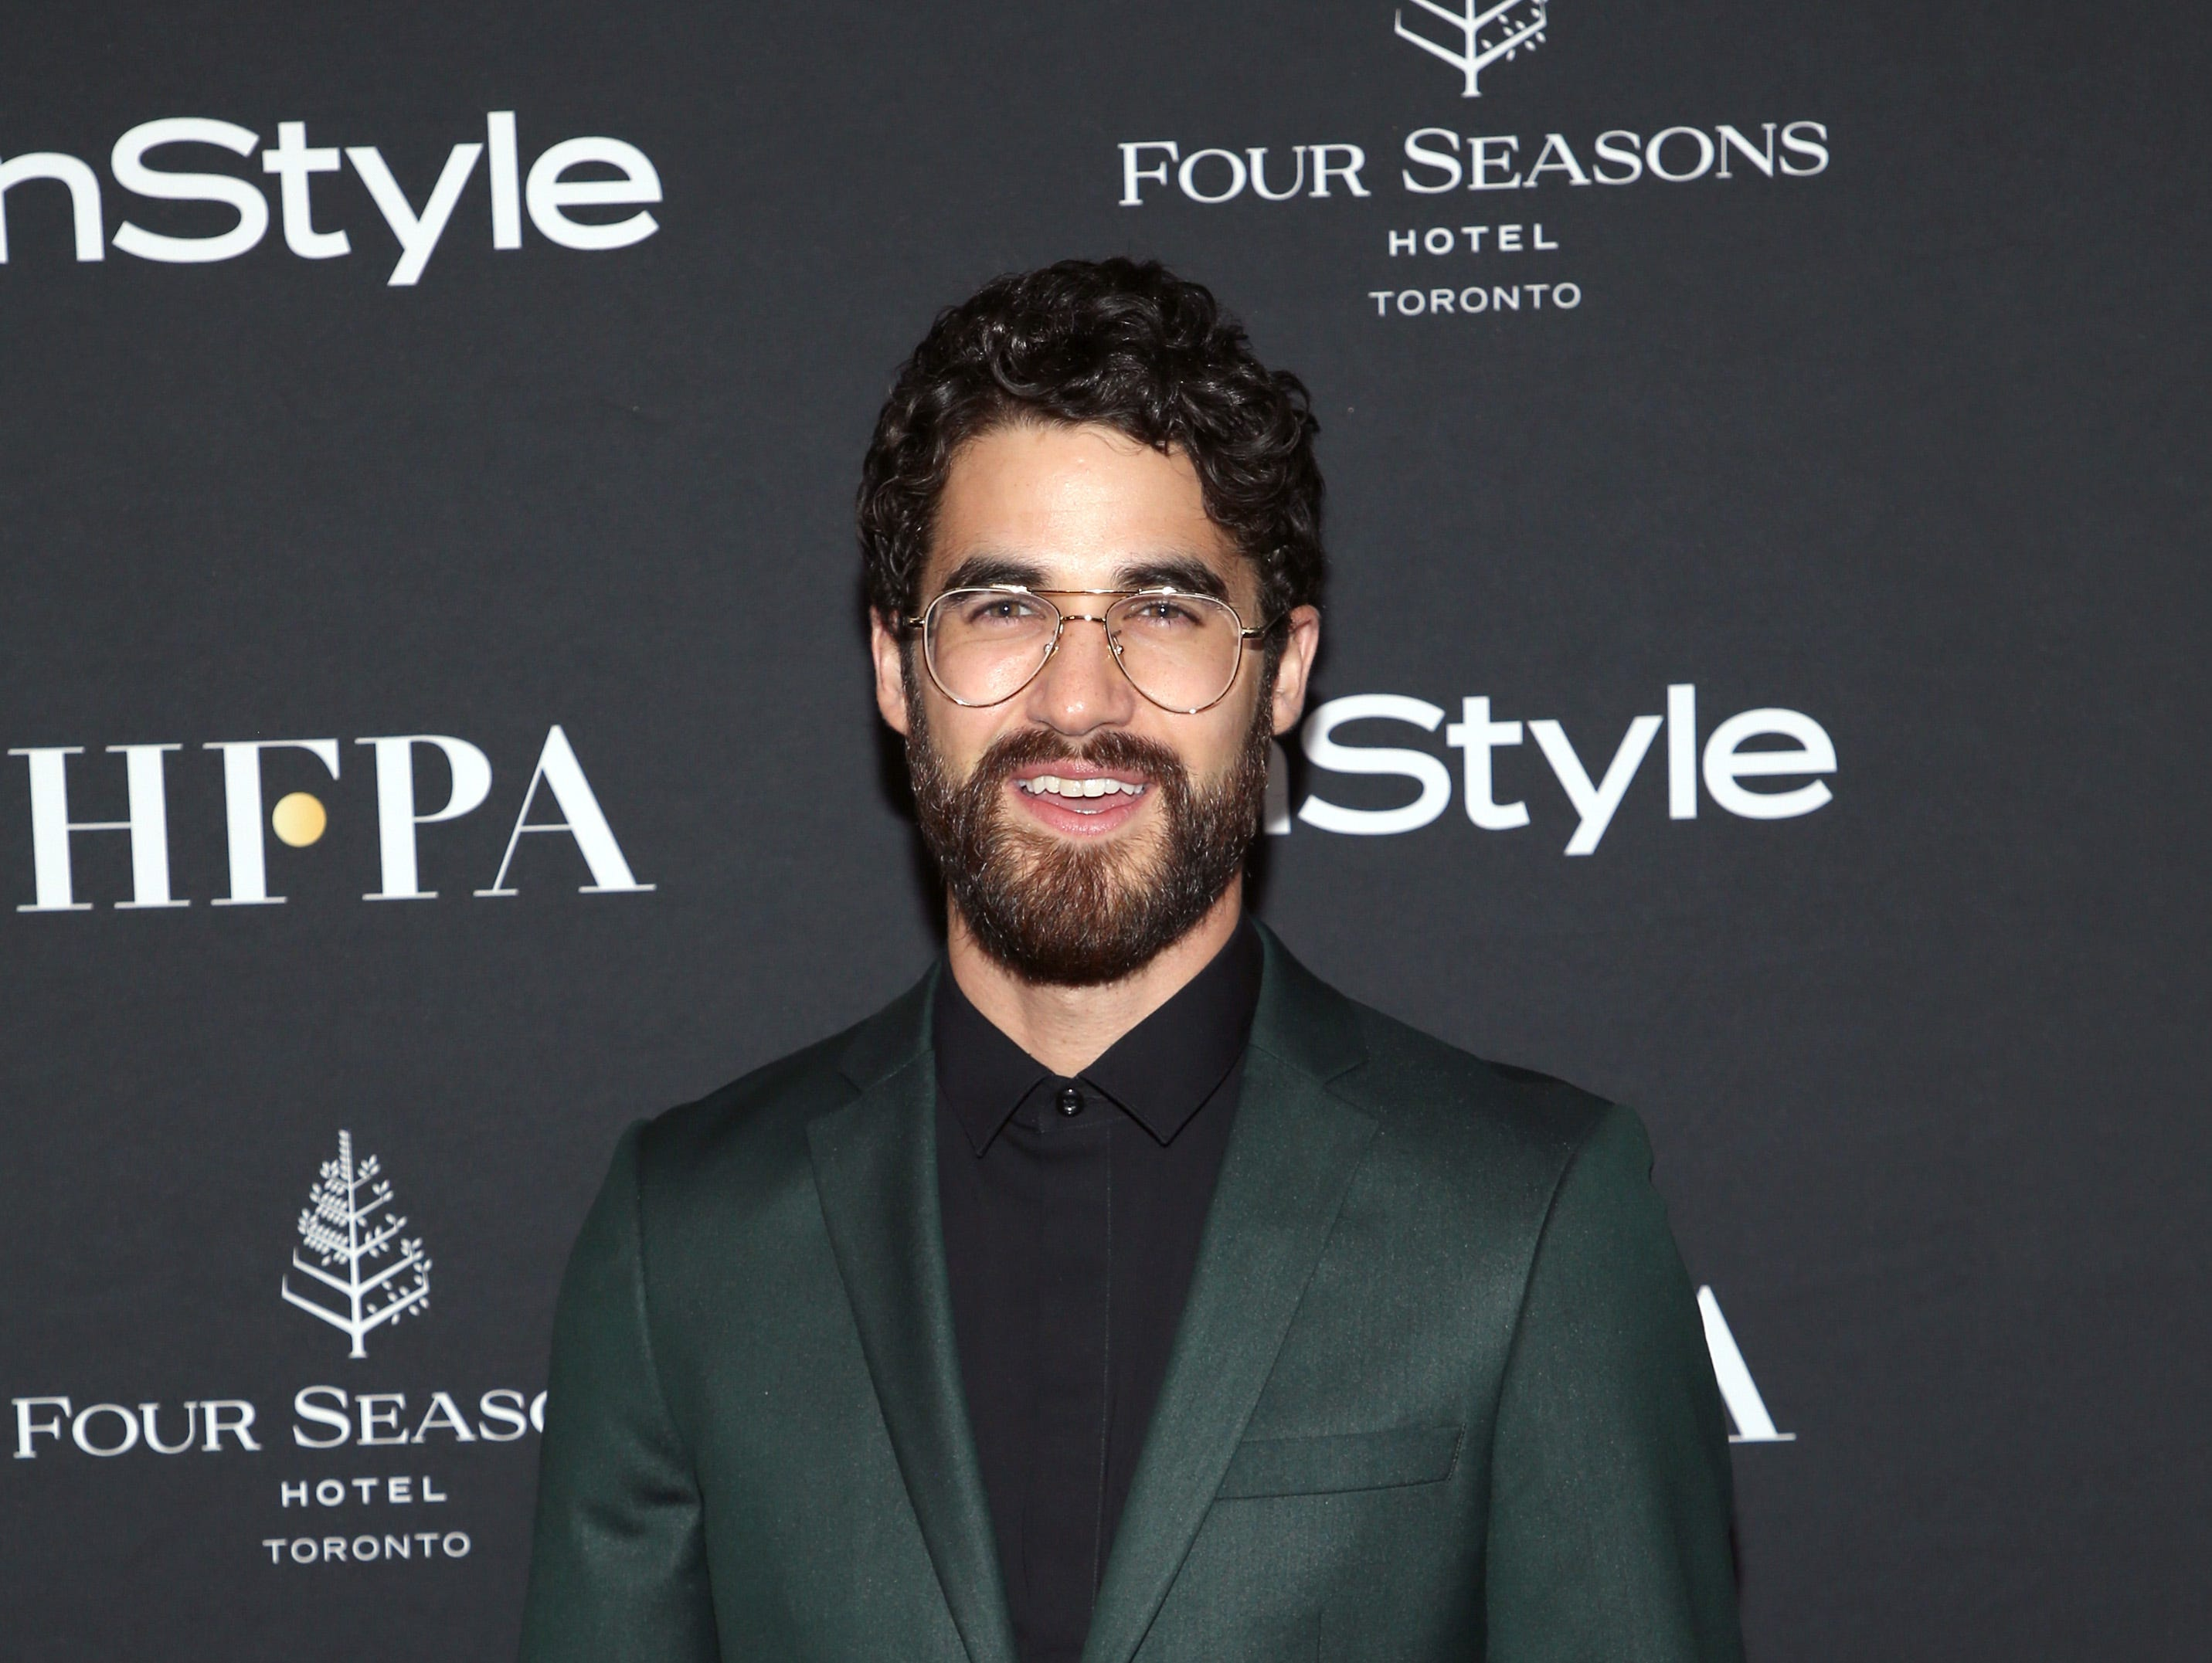 TORONTO, ON - SEPTEMBER 08: Darren Criss  attends The Hollywood Foreign Press Association and InStyle Party during 2018 Toronto International Film Festival at Four Seasons Hotel on September 8, 2018 in Toronto, Canada.  (Photo by Phillip Faraone/WireImage) ORG XMIT: 775218499 ORIG FILE ID: 1029588400